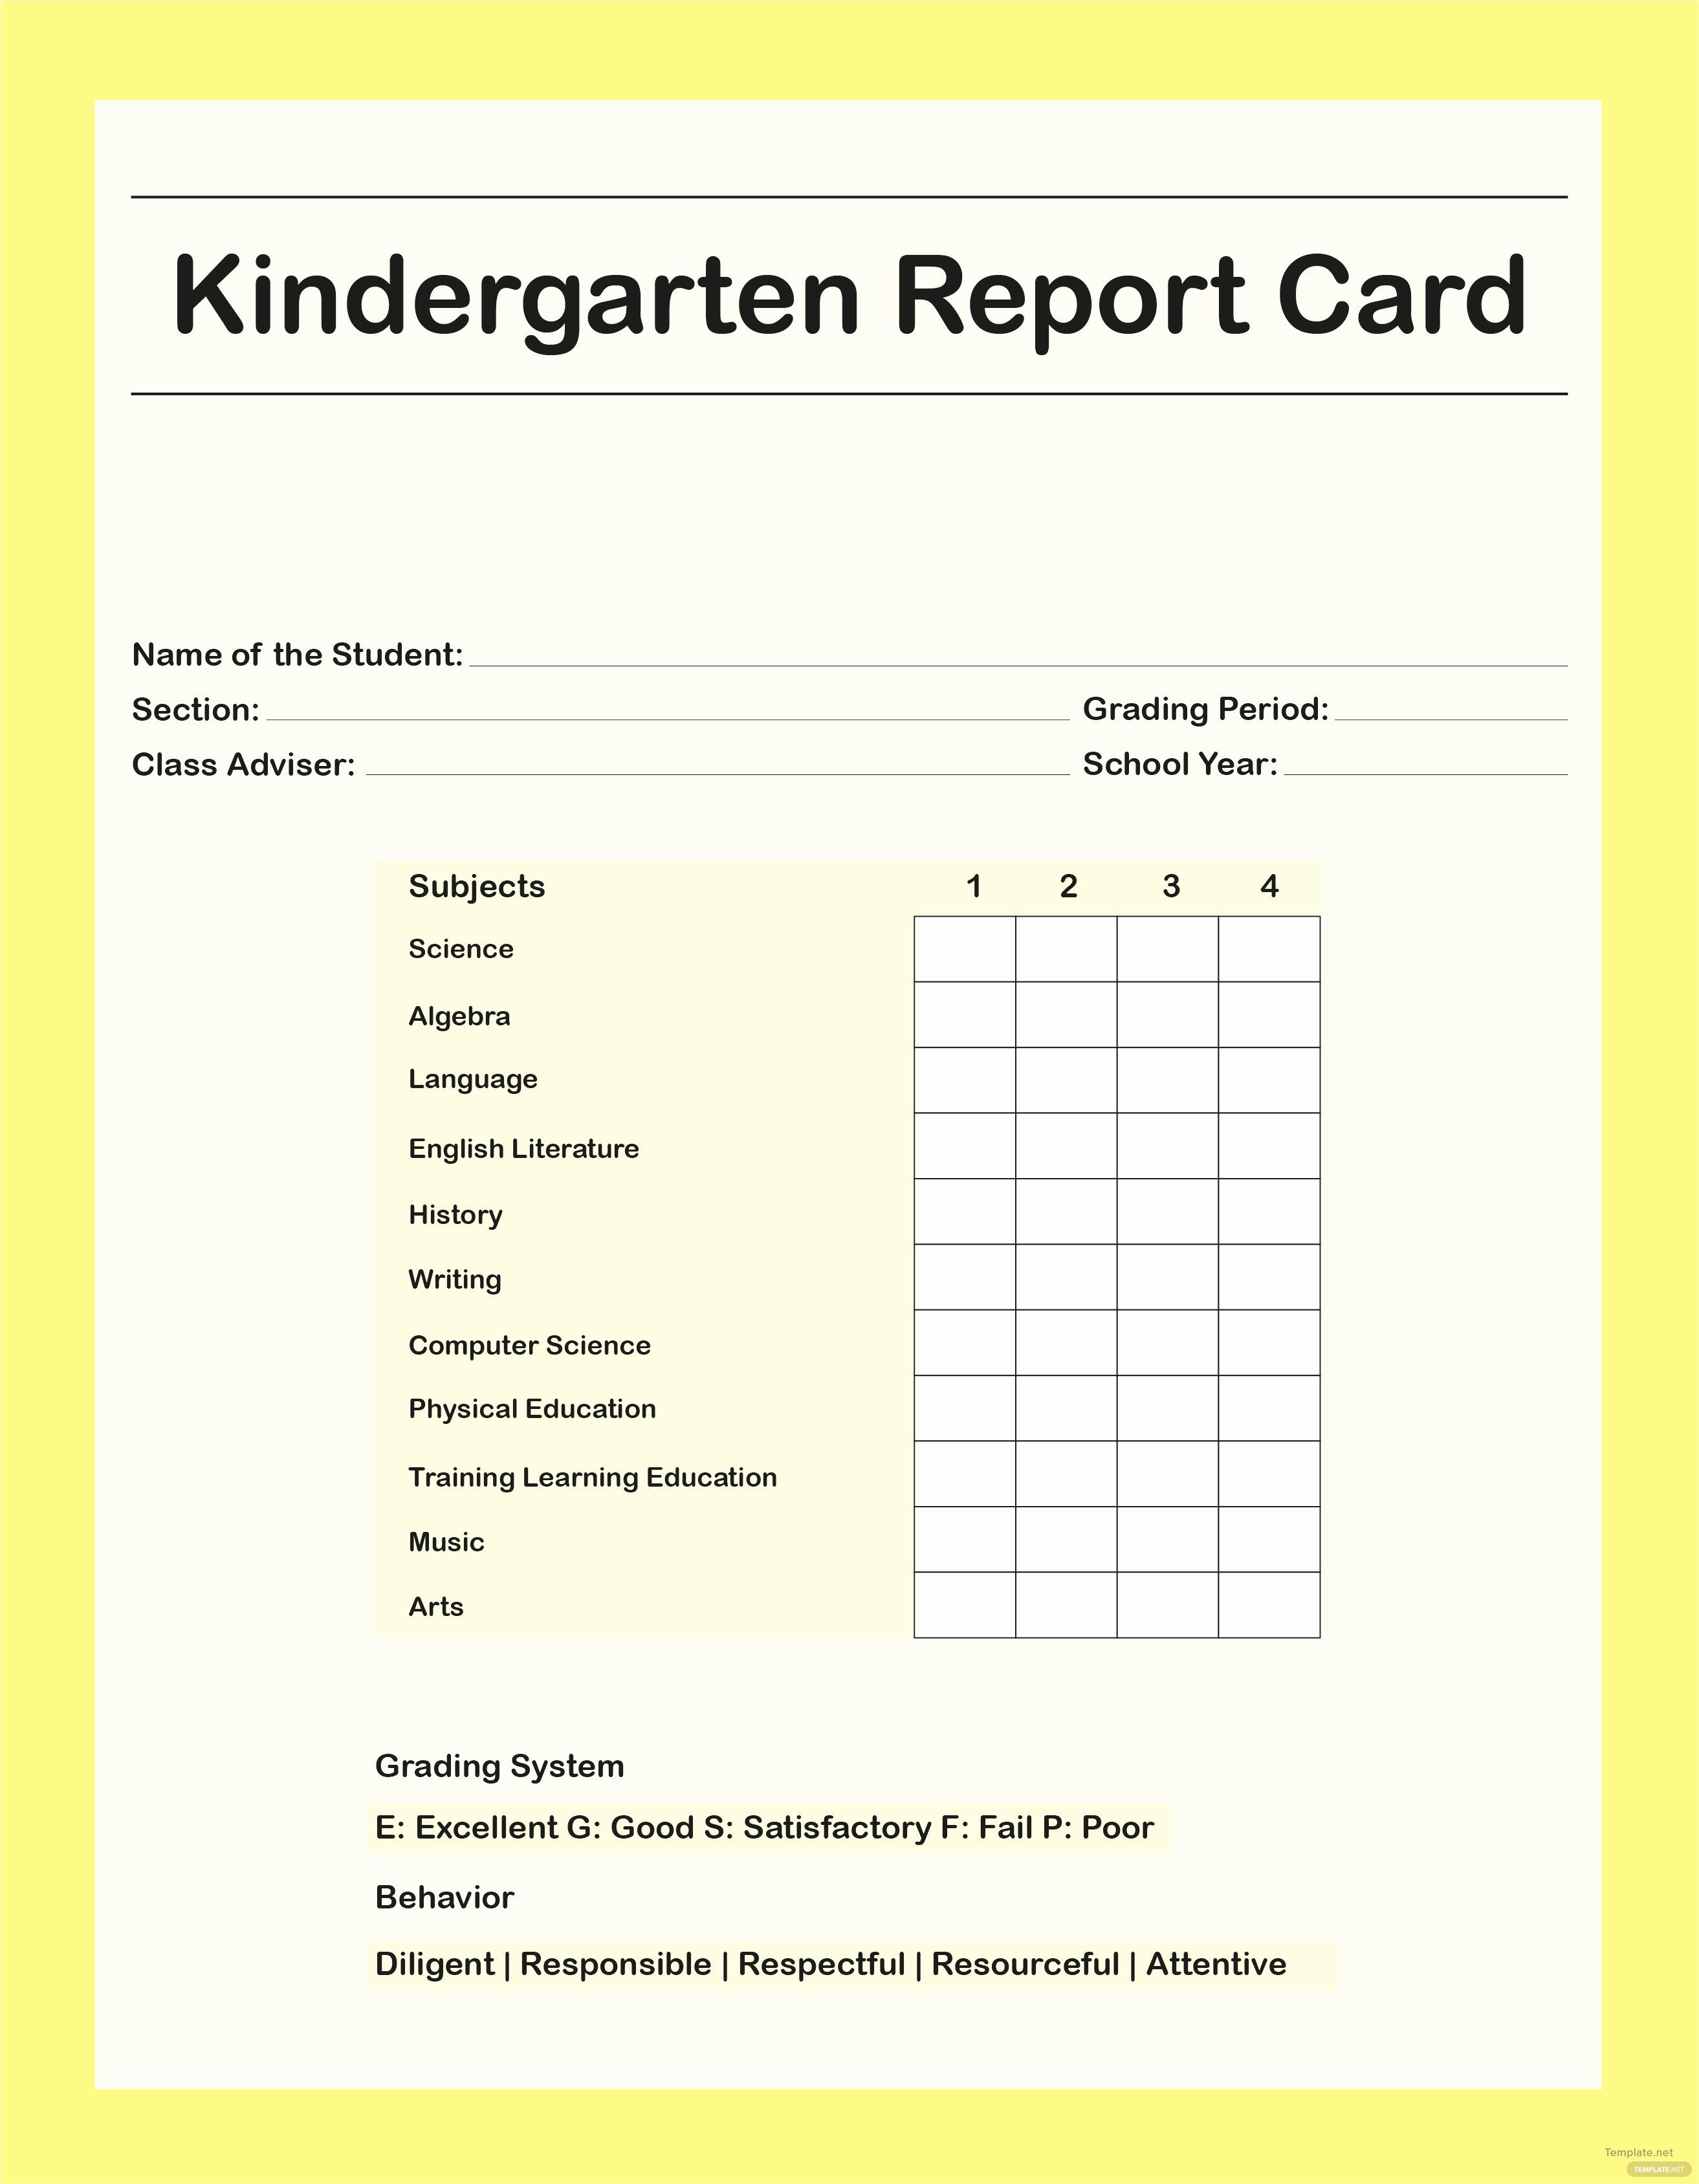 Student Report Card Template Fresh Free Kindergarten Report Card Template In Adobe Shop